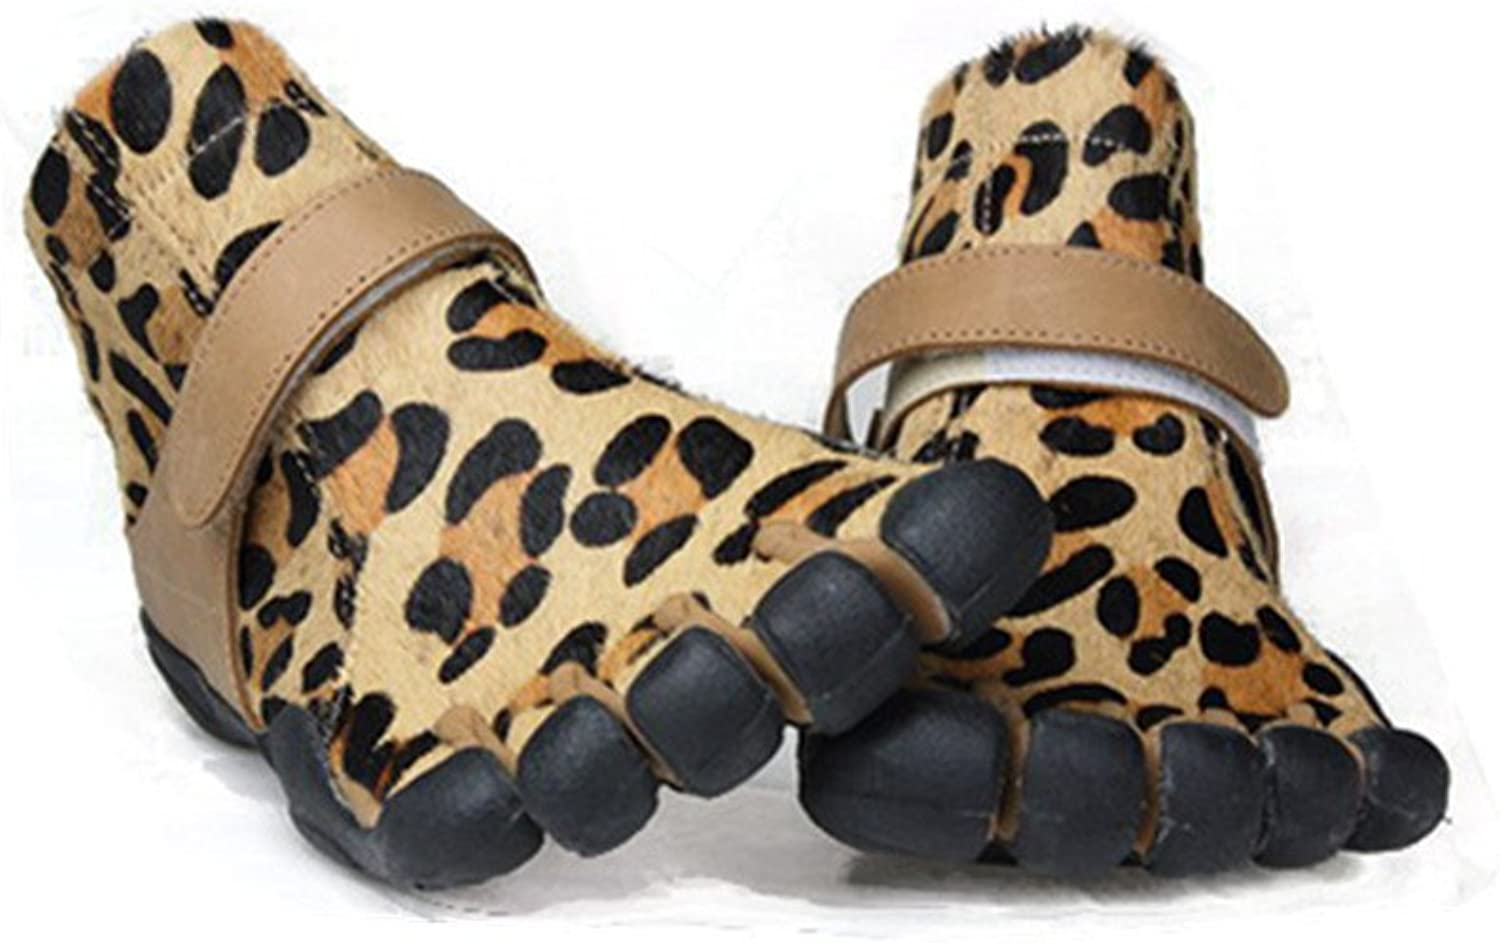 5Toe Women's Sexy Leopard Five Fingers Boots Horse Hair Leisure shoes for Boating Fishing Biking